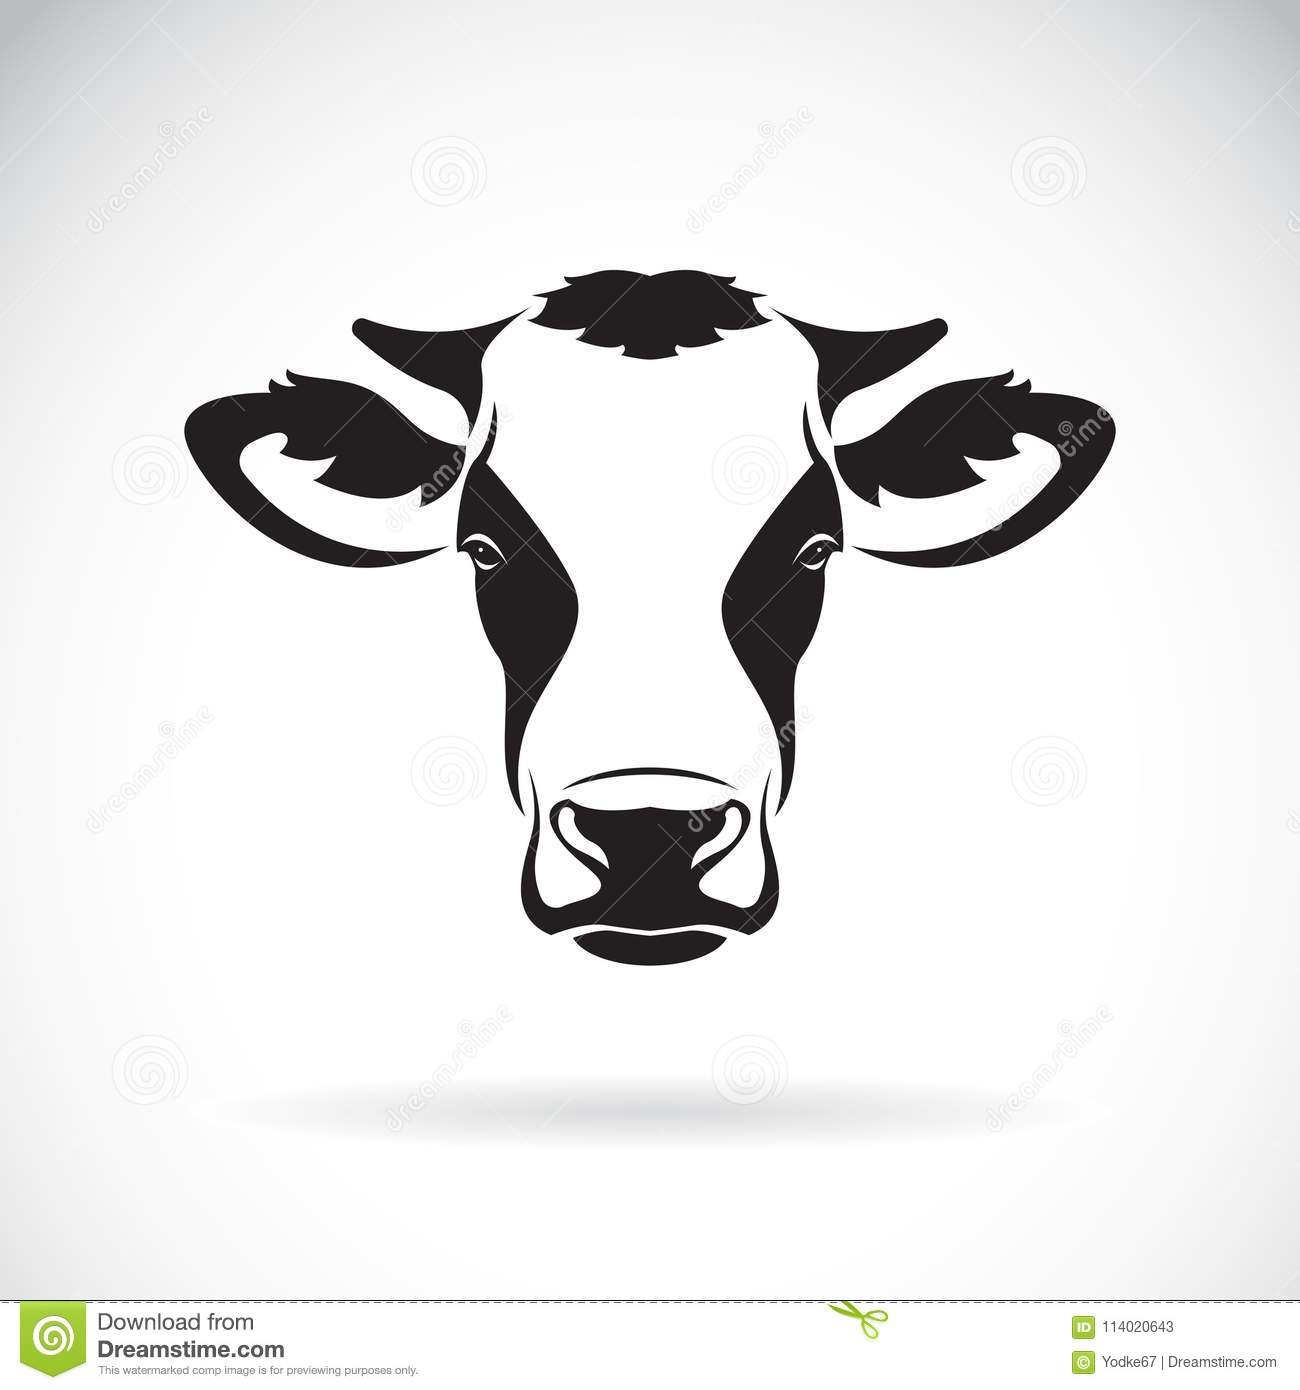 Vector Of A Cow Head Design On White Background. Farm Animal. Ea.